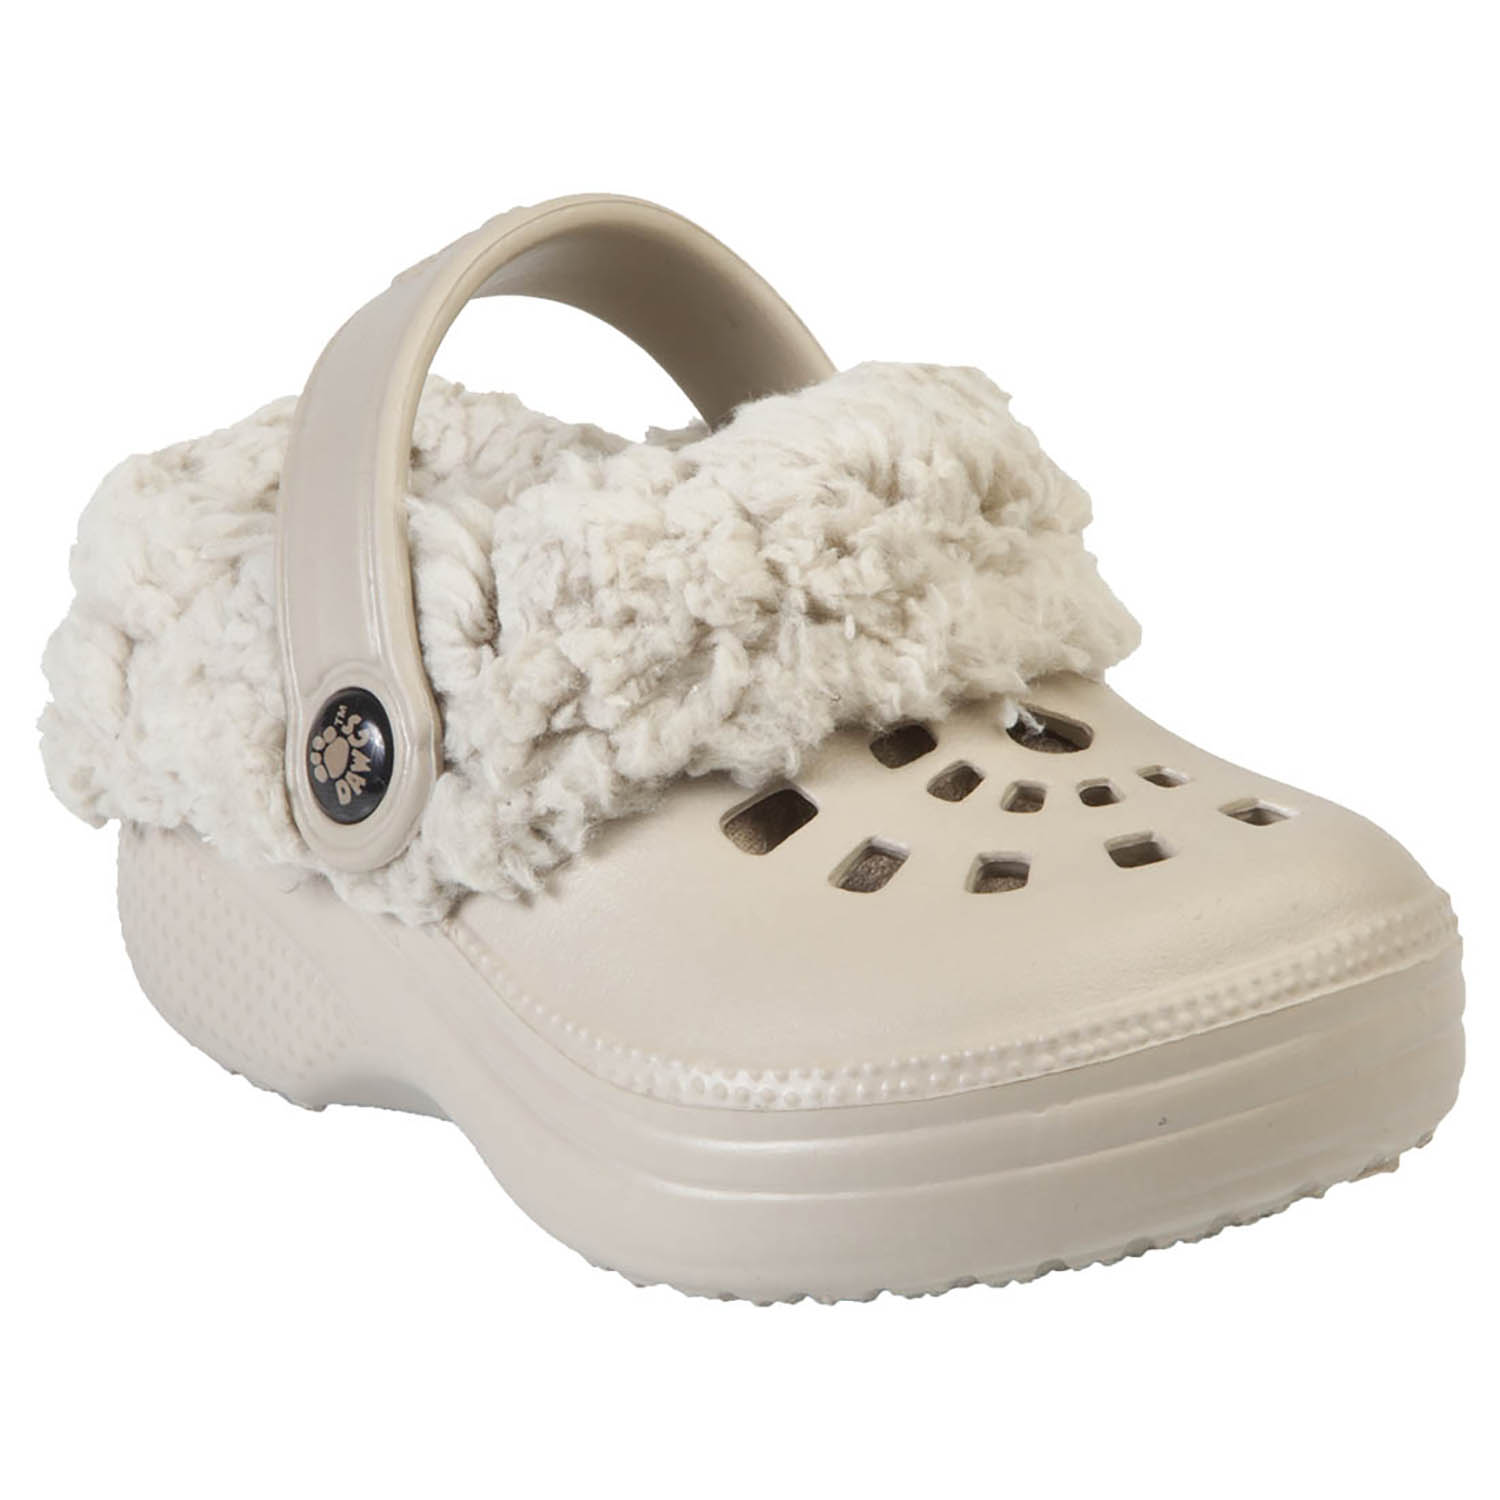 Toddler FleeceDawgs Clogs - Tan with Tan 7-8